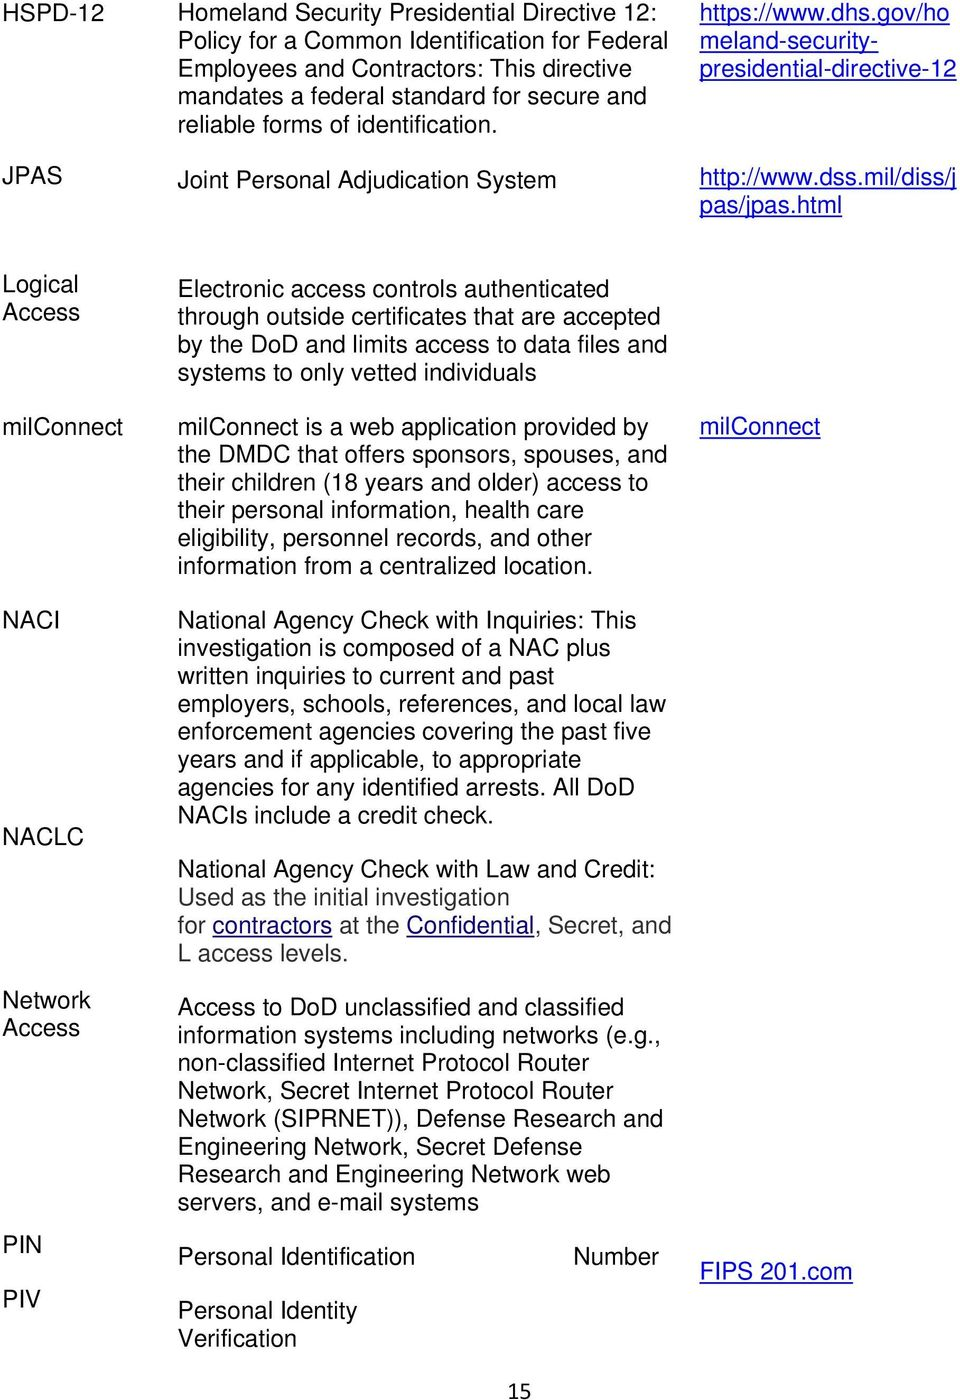 html Logical Access milconnect NACI NACLC Network Access PIN PIV Electronic access controls authenticated through outside certificates that are accepted by the DoD and limits access to data files and